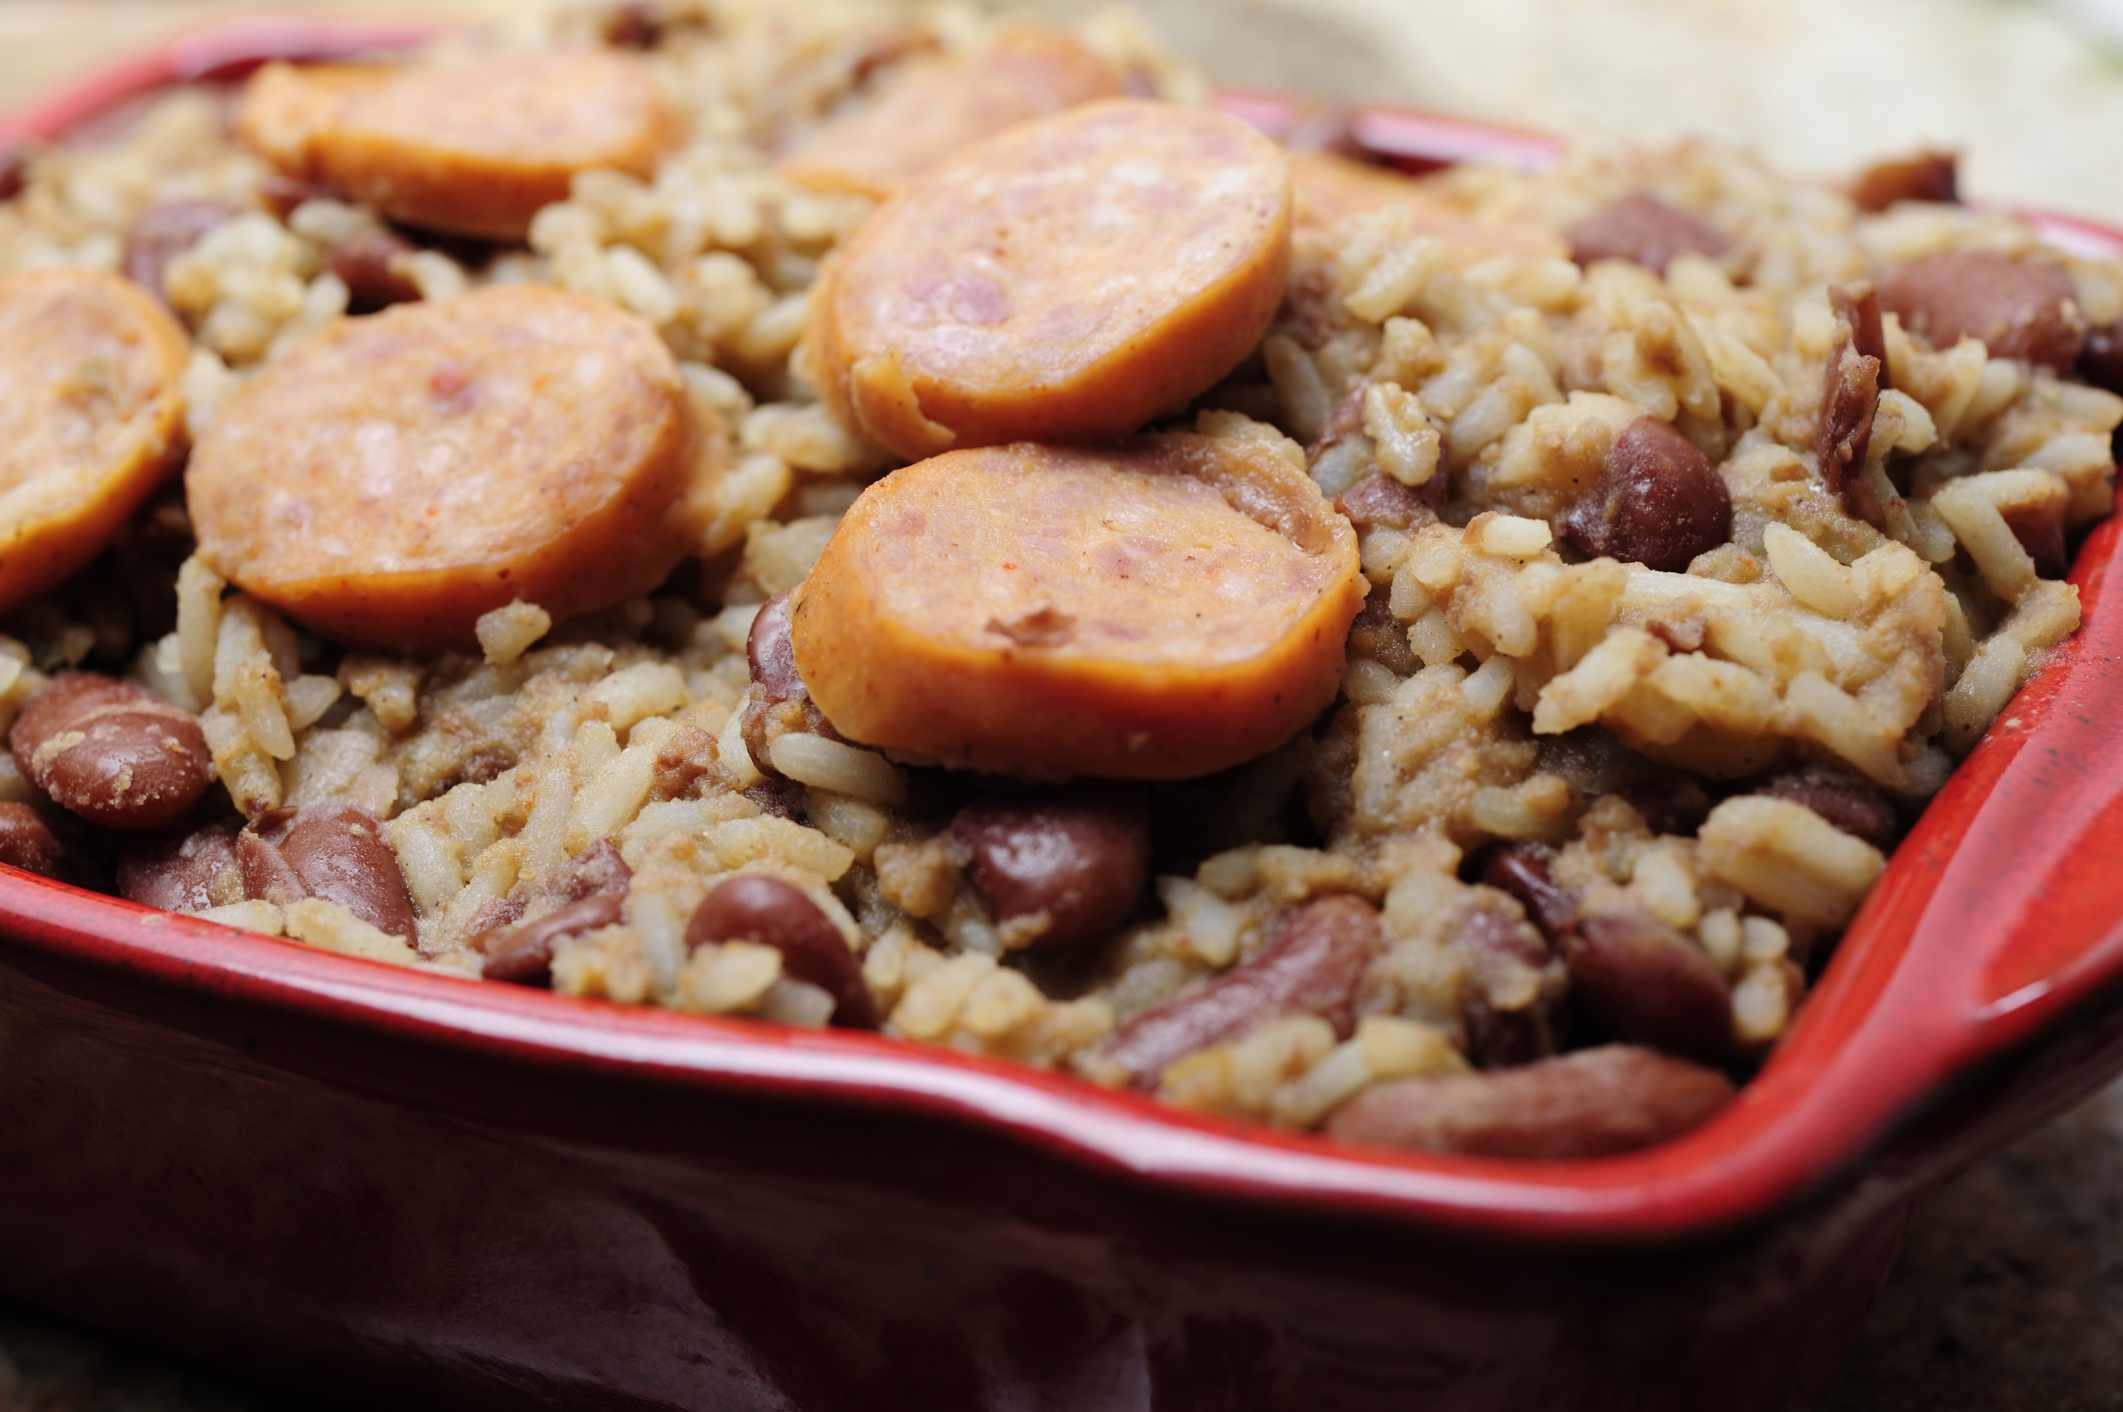 Red beans, rice, and sausage